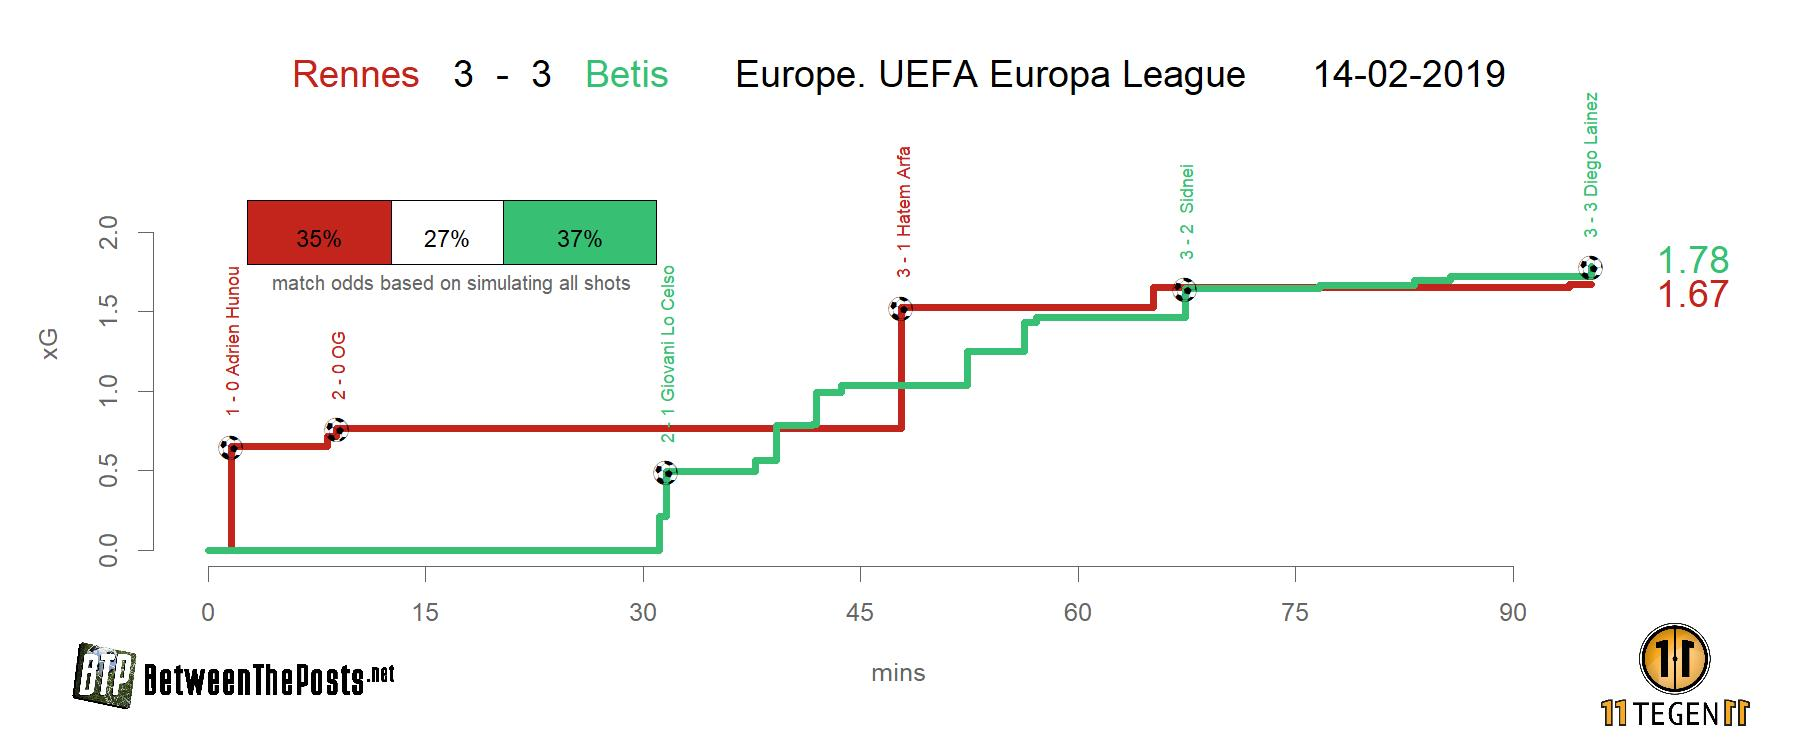 Expected goals plot Stade Rennais - Real Betis 3-3 Europa League